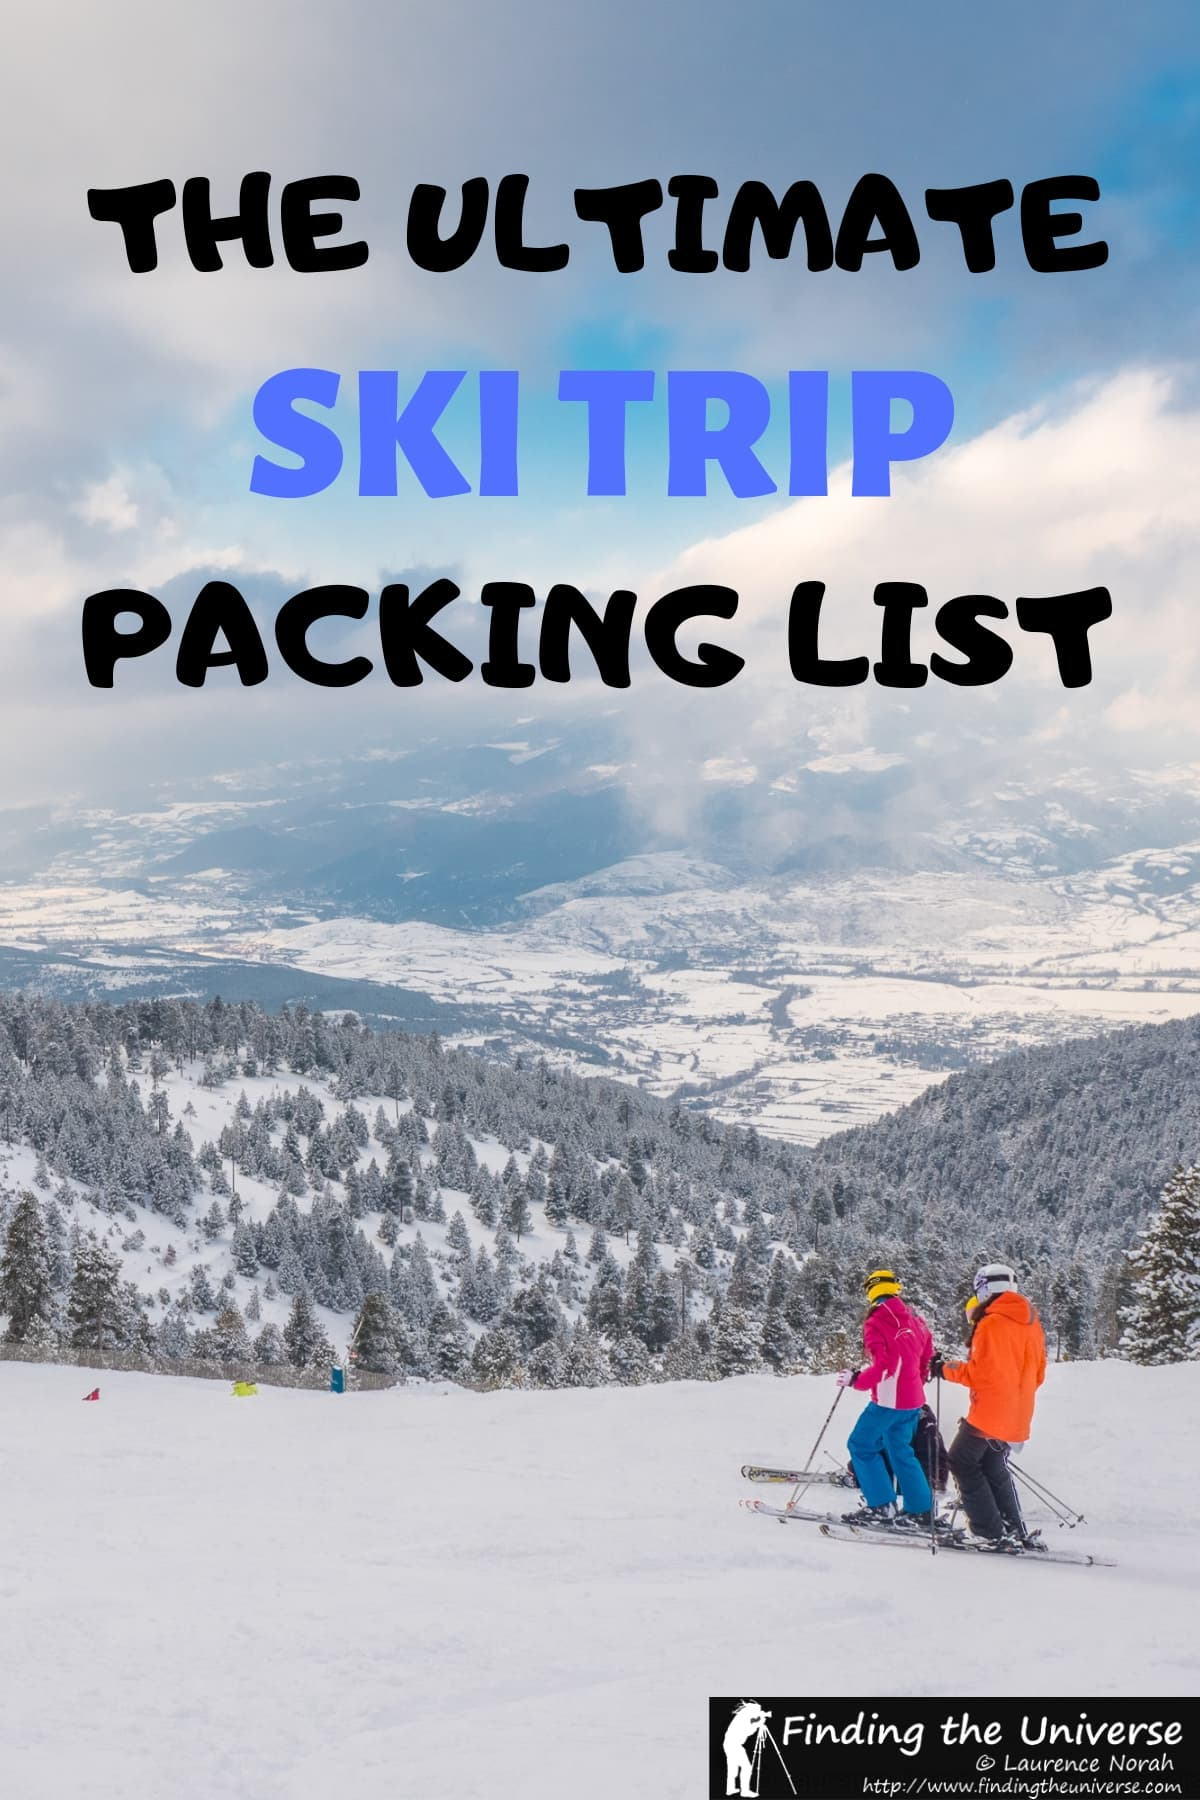 Detailed guide to what to pack for a ski trip, including skiing equipment, suggested clothes, and everything else! #travel #skiing #ski #packing #packinglist